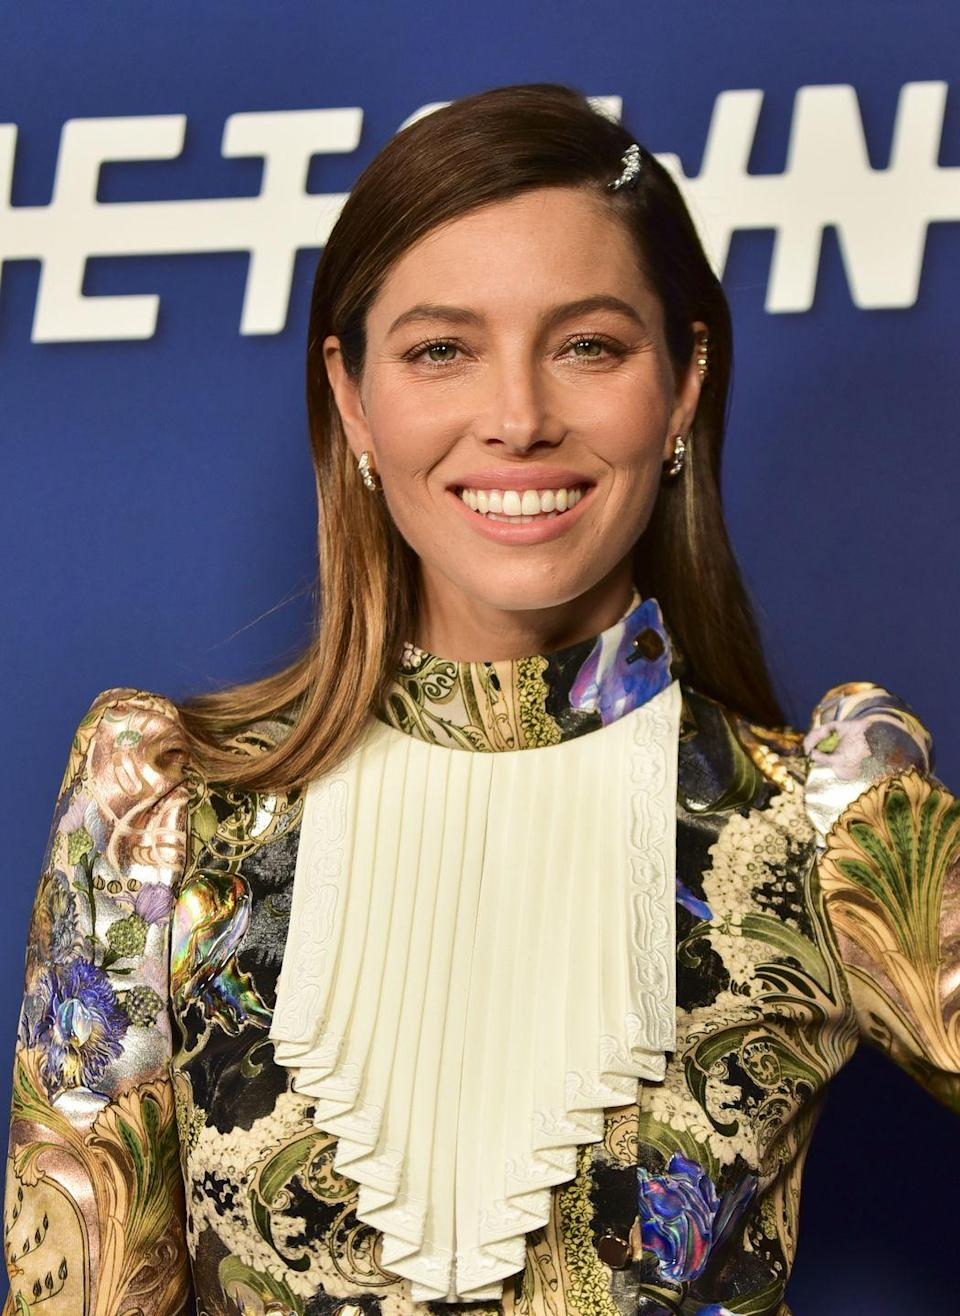 """<p><strong>Jessica Biel's</strong> ombré starts super dark and fades to super light at the ends. Dress it up with a jeweled hair accessory.</p><p><a class=""""link rapid-noclick-resp"""" href=""""https://go.redirectingat.com?id=74968X1596630&url=https%3A%2F%2Fwww.anthropologie.com%2Fshop%2Ftwigs-honey-nomi-hair-pins&sref=https%3A%2F%2Fwww.goodhousekeeping.com%2Fbeauty%2Fhair%2Fg34691983%2Fchestnut-hair-color-ideas%2F"""" rel=""""nofollow noopener"""" target=""""_blank"""" data-ylk=""""slk:SHOP HAIR ACCESSORY"""">SHOP HAIR ACCESSORY</a></p>"""